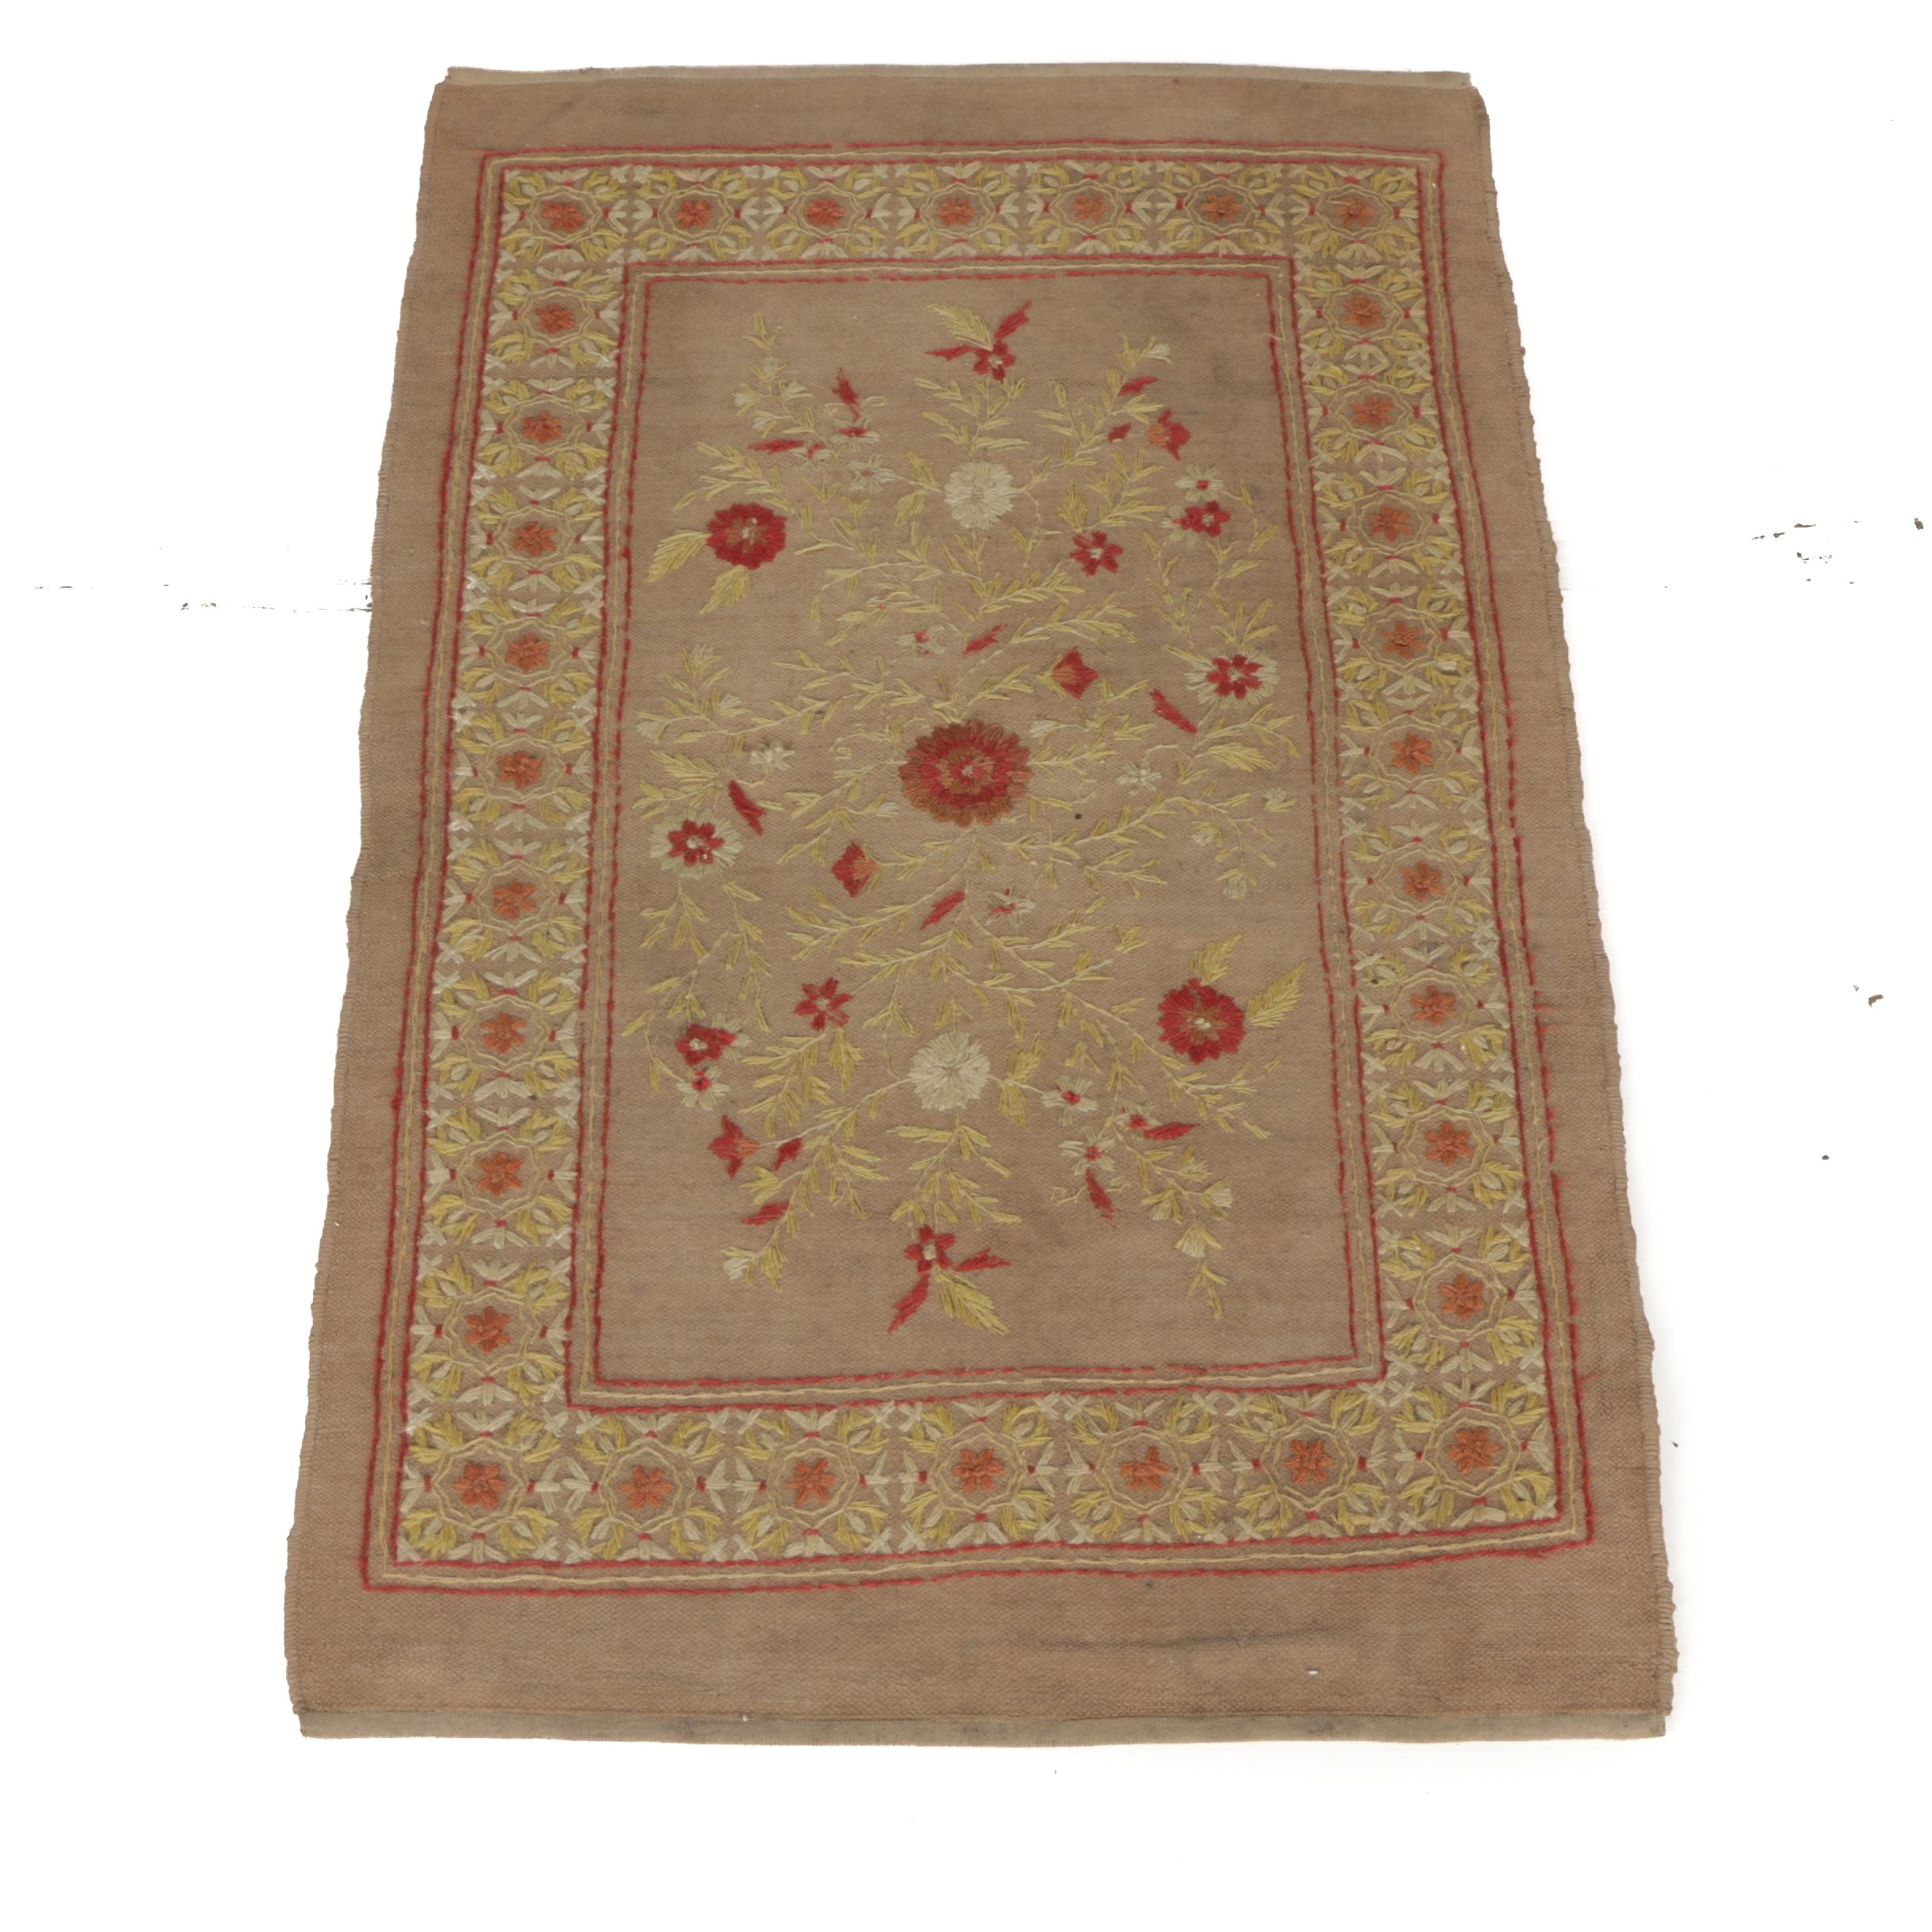 Hand-Embroidered Floral Cotton Area Rug